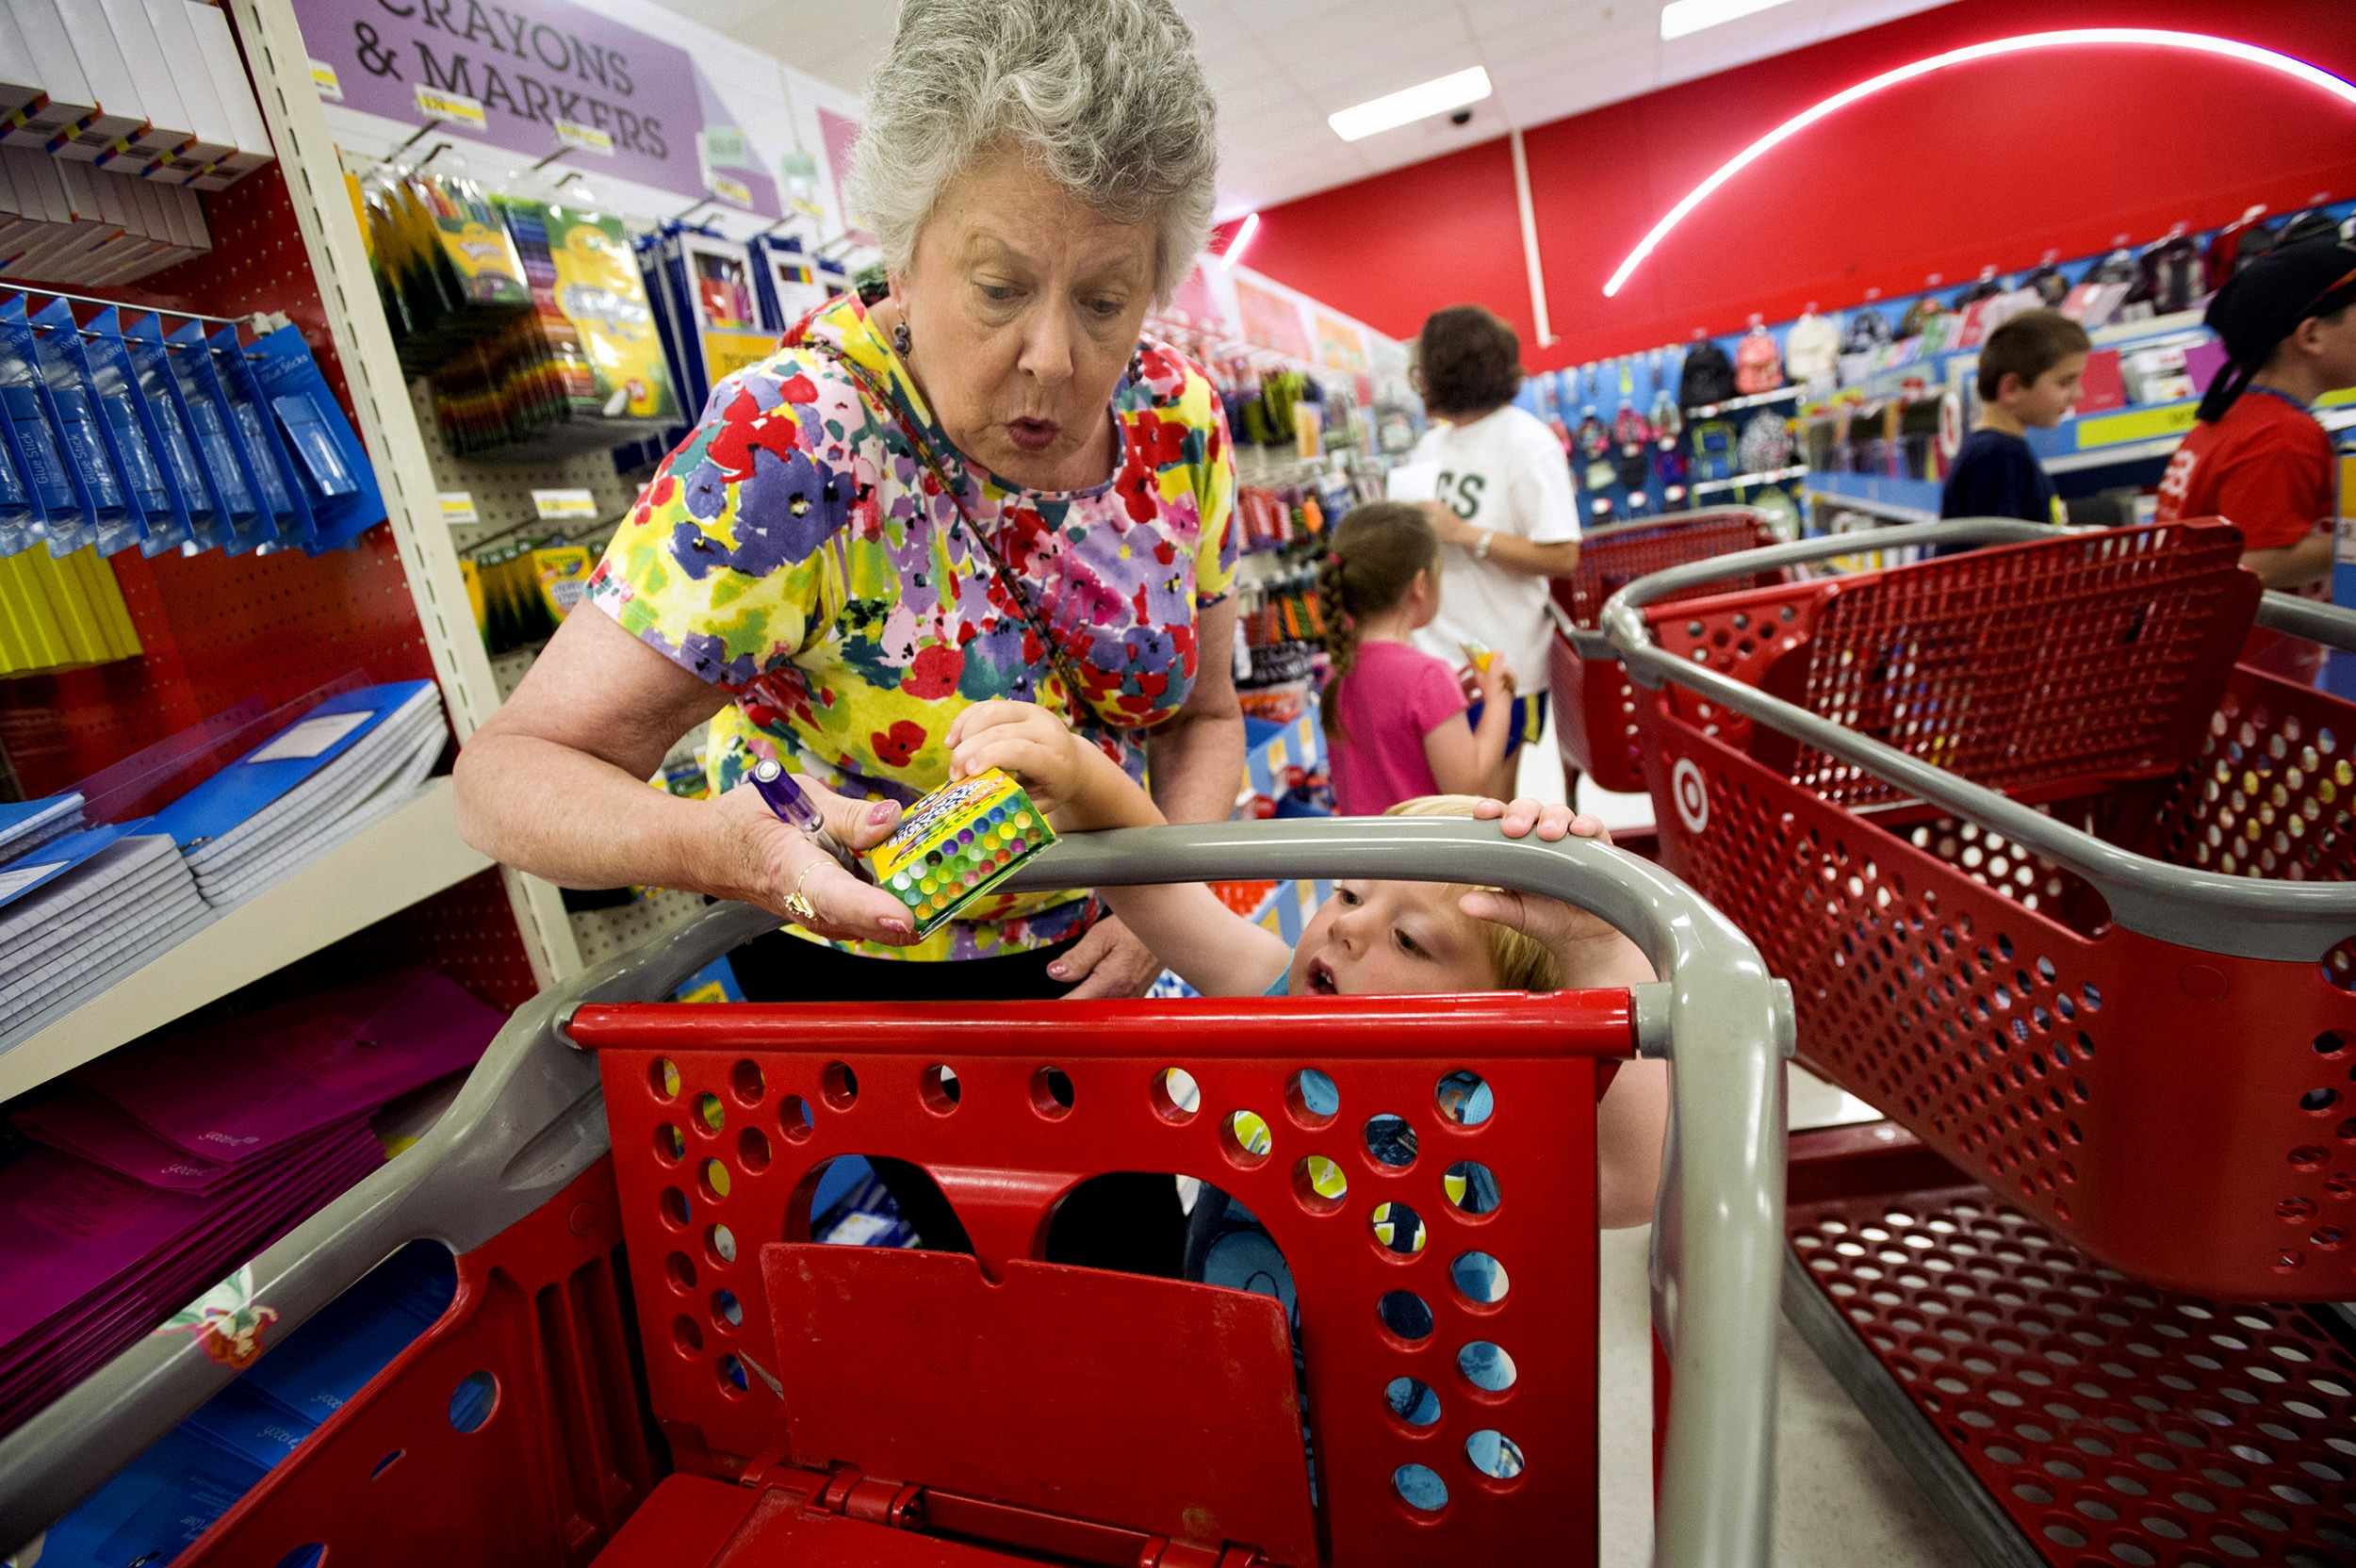 Julie Wilkins helps her grandson, Griffin Brady, 3, put a box of crayons in a shopping cart at a Target store in Memphis, Tenn. Target's third-quarter profits rose, in part, on solid sales of back-to-school items.